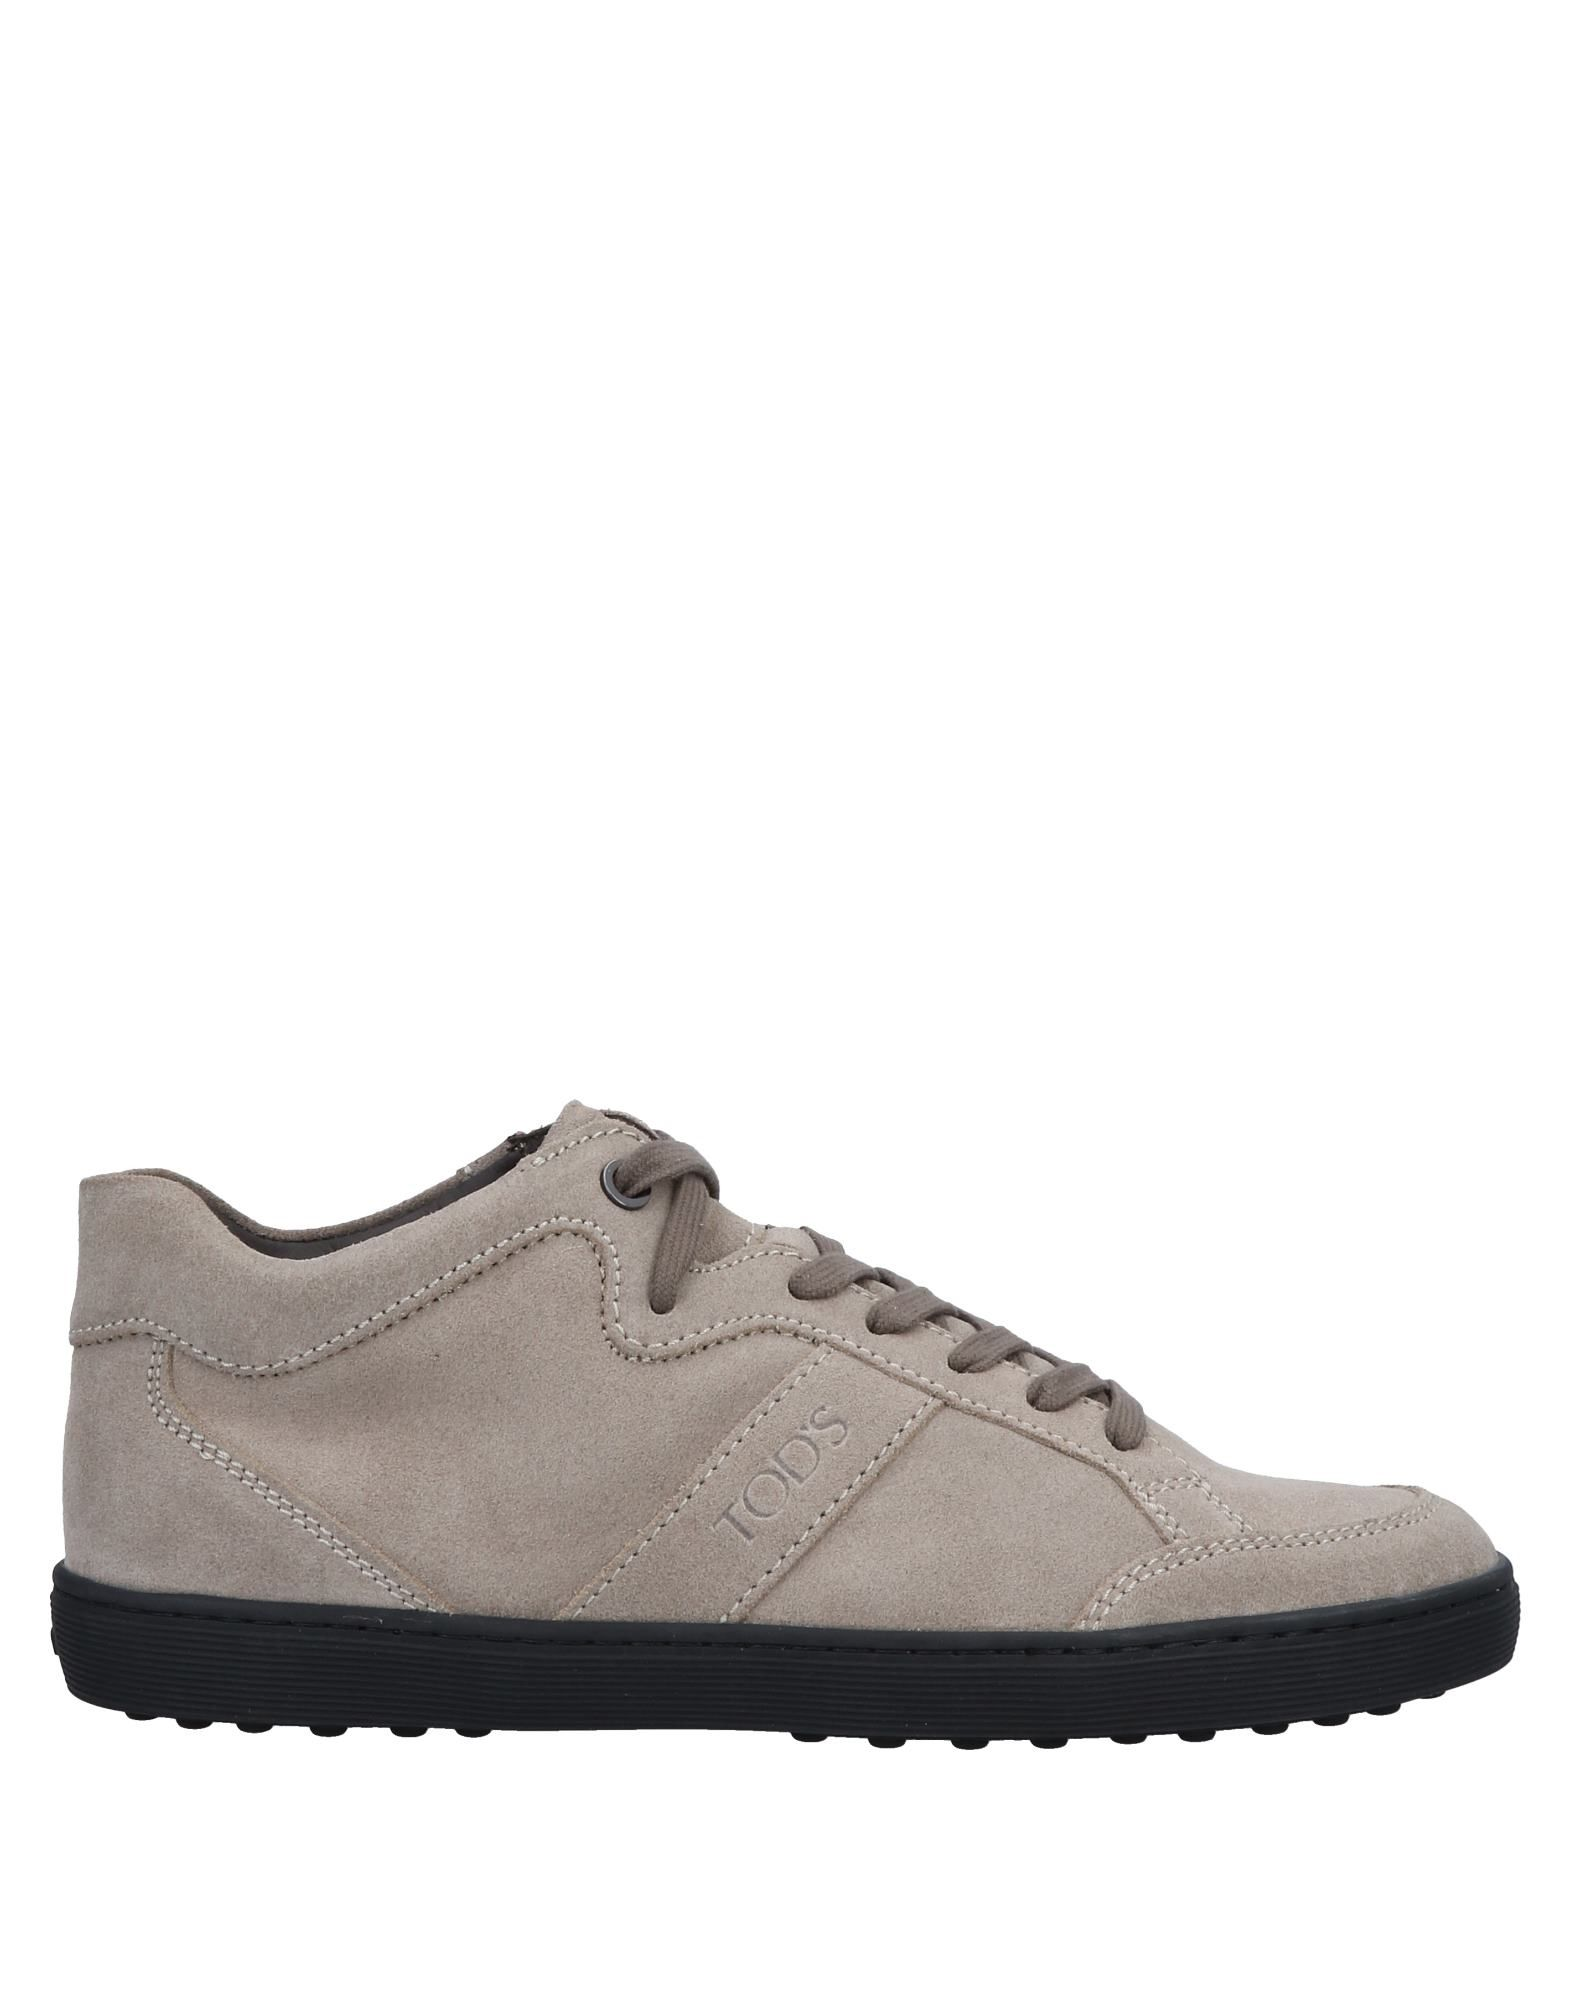 Baskets Tod's Femme - Baskets Tod's Beige Chaussures casual sauvages